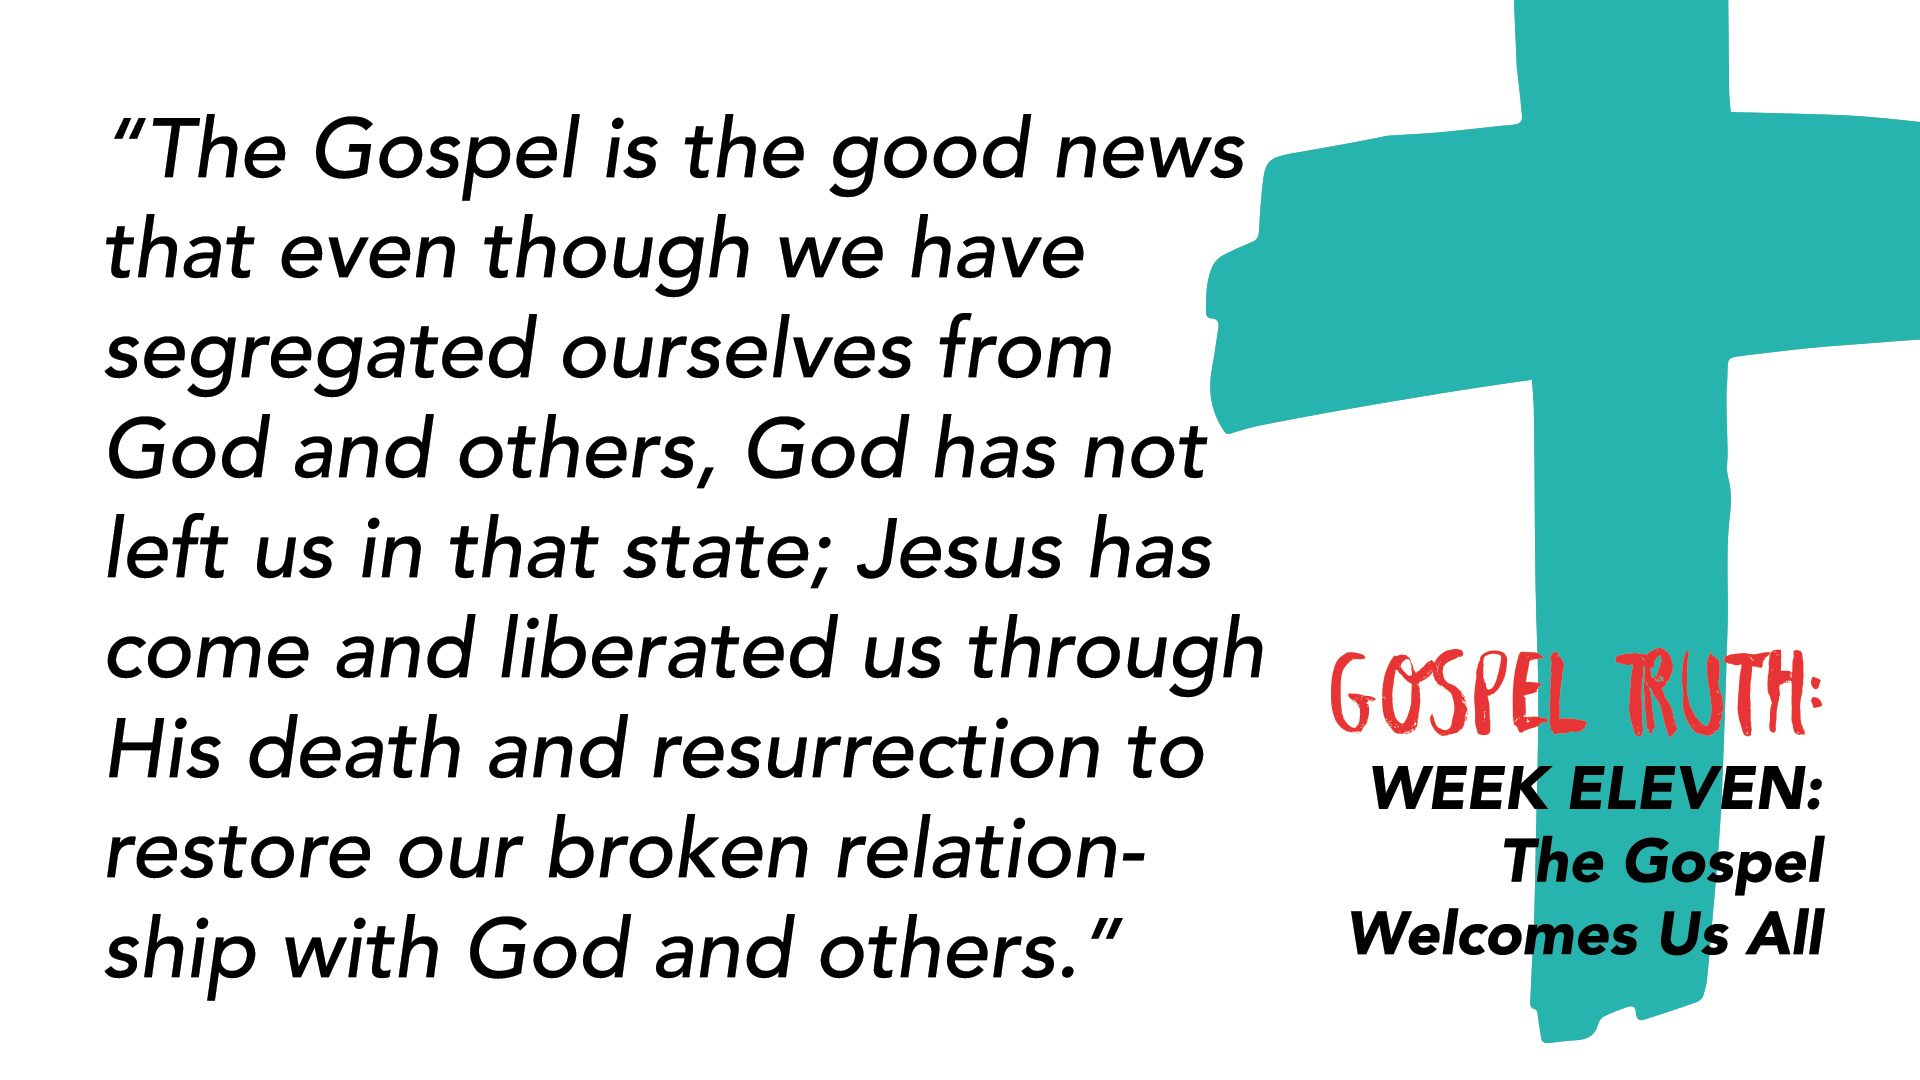 """The Gospel is the good news that even though we have segregated ourselves from God and others, God has not left us in that state; Jesus has come and liberated us through His death and resurrection to restore our broken relationship with God and others."""